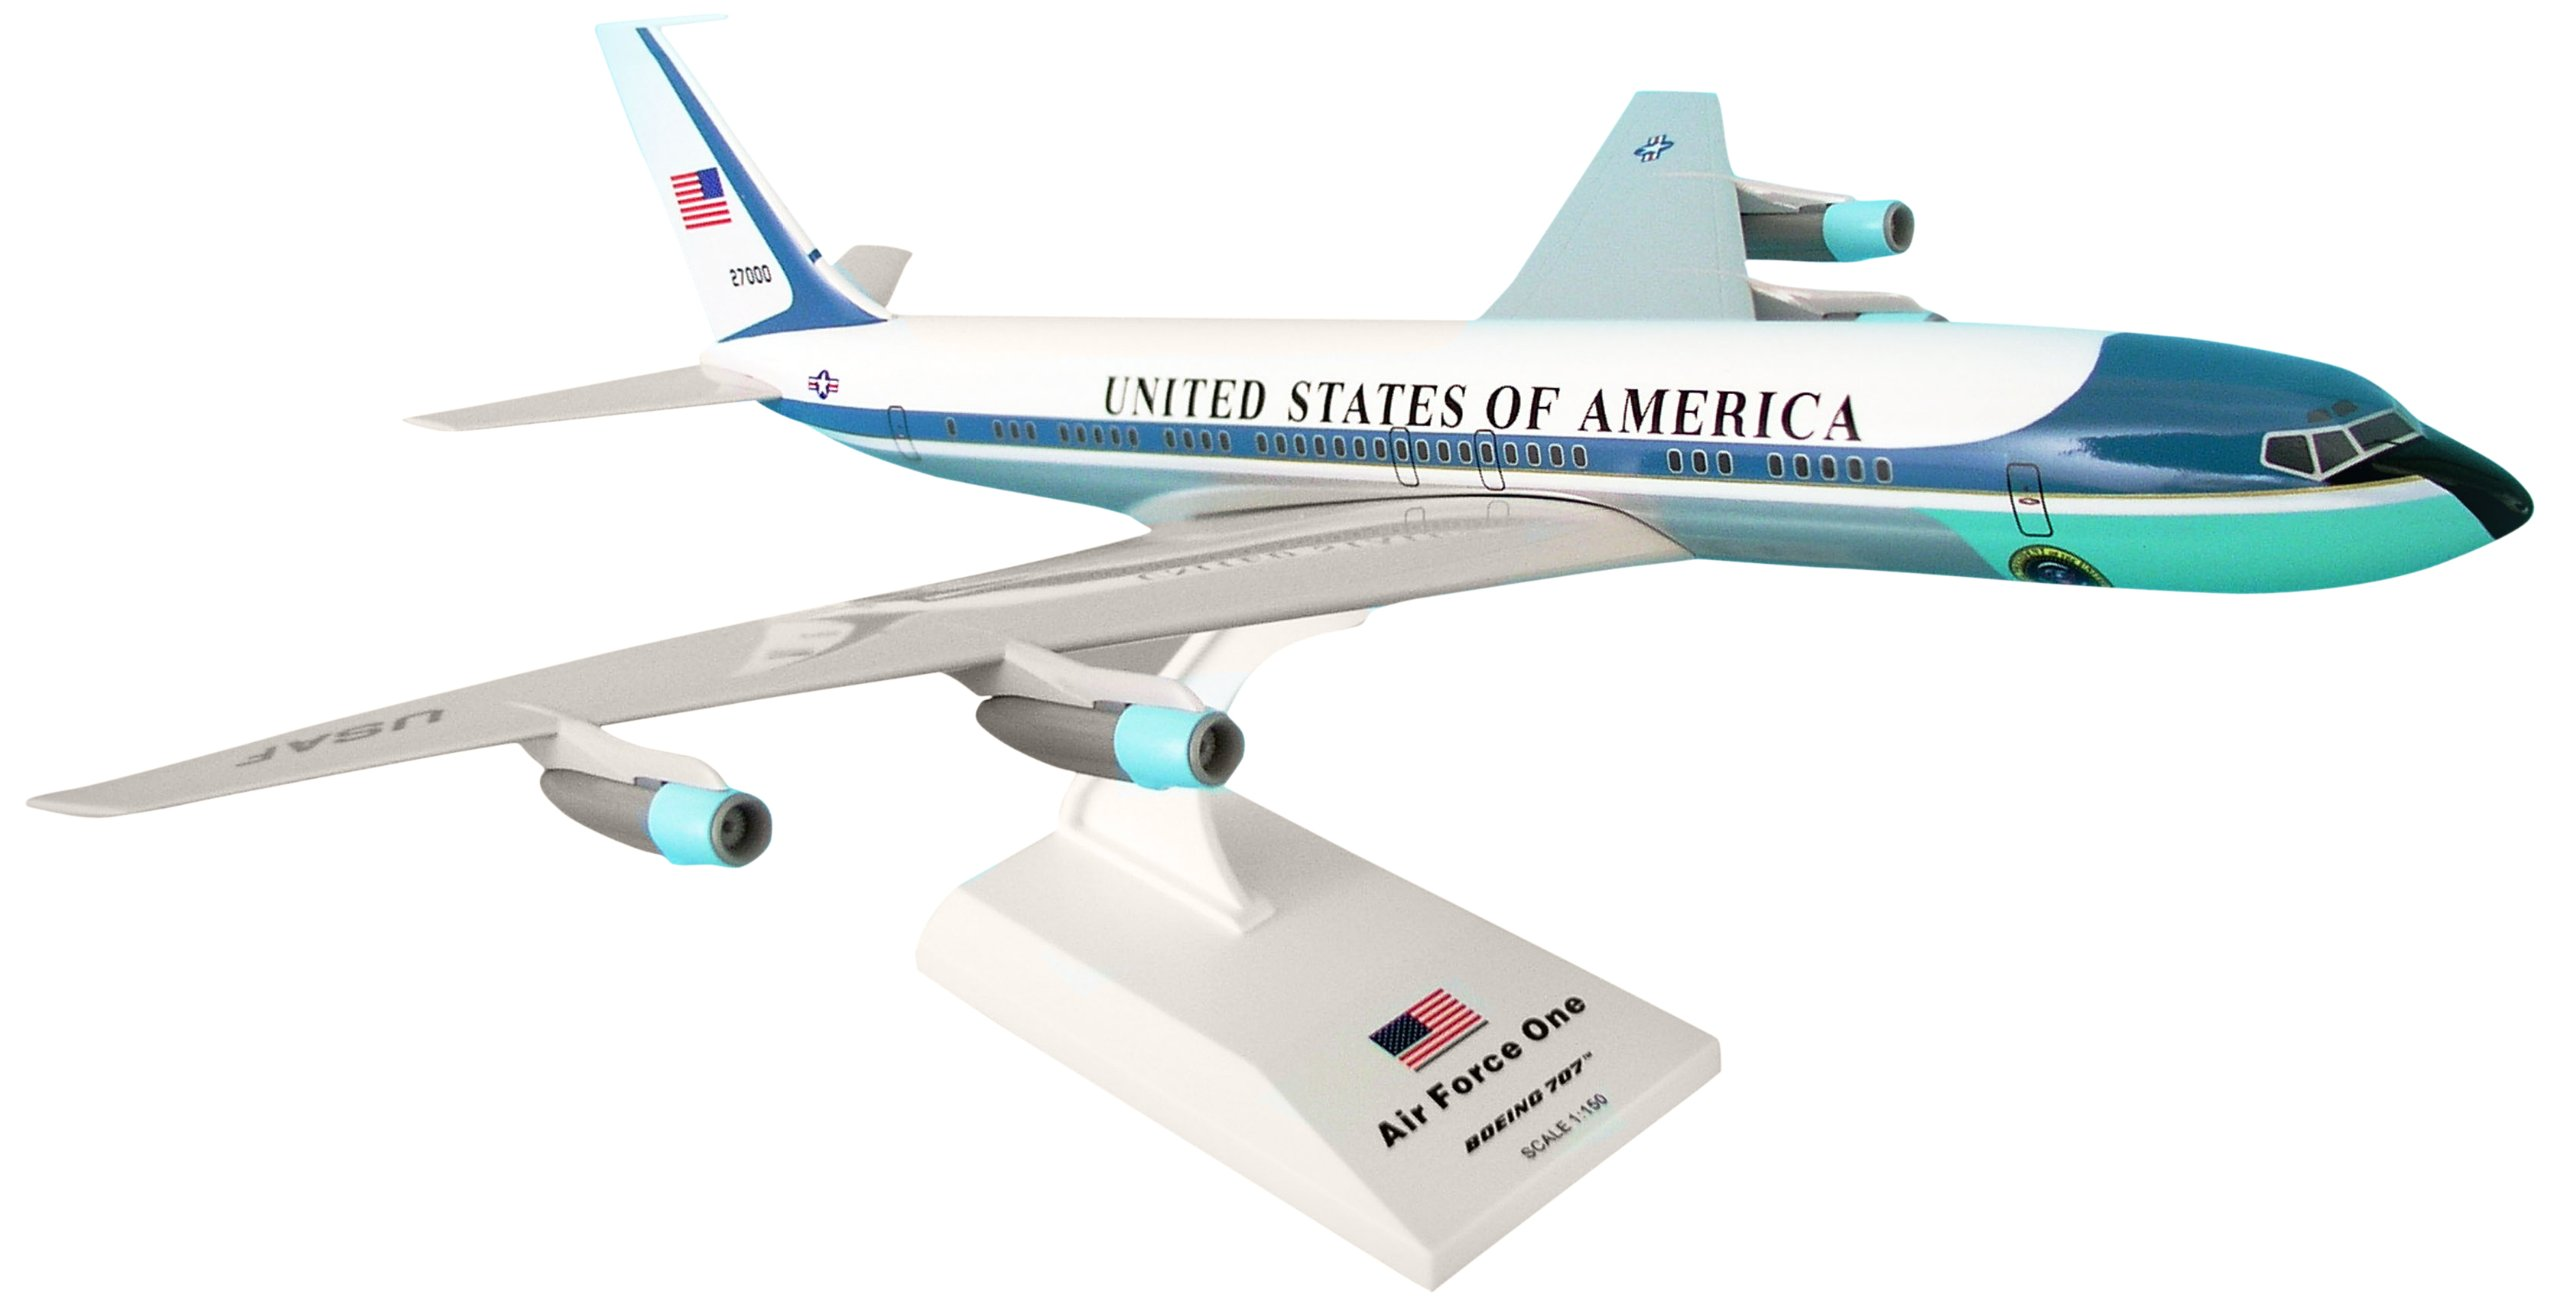 Daron Skymarks Air Force One VC-137 (707) Reg#27000 Airplane Model Building Kit, 1/150-Scale by Daron